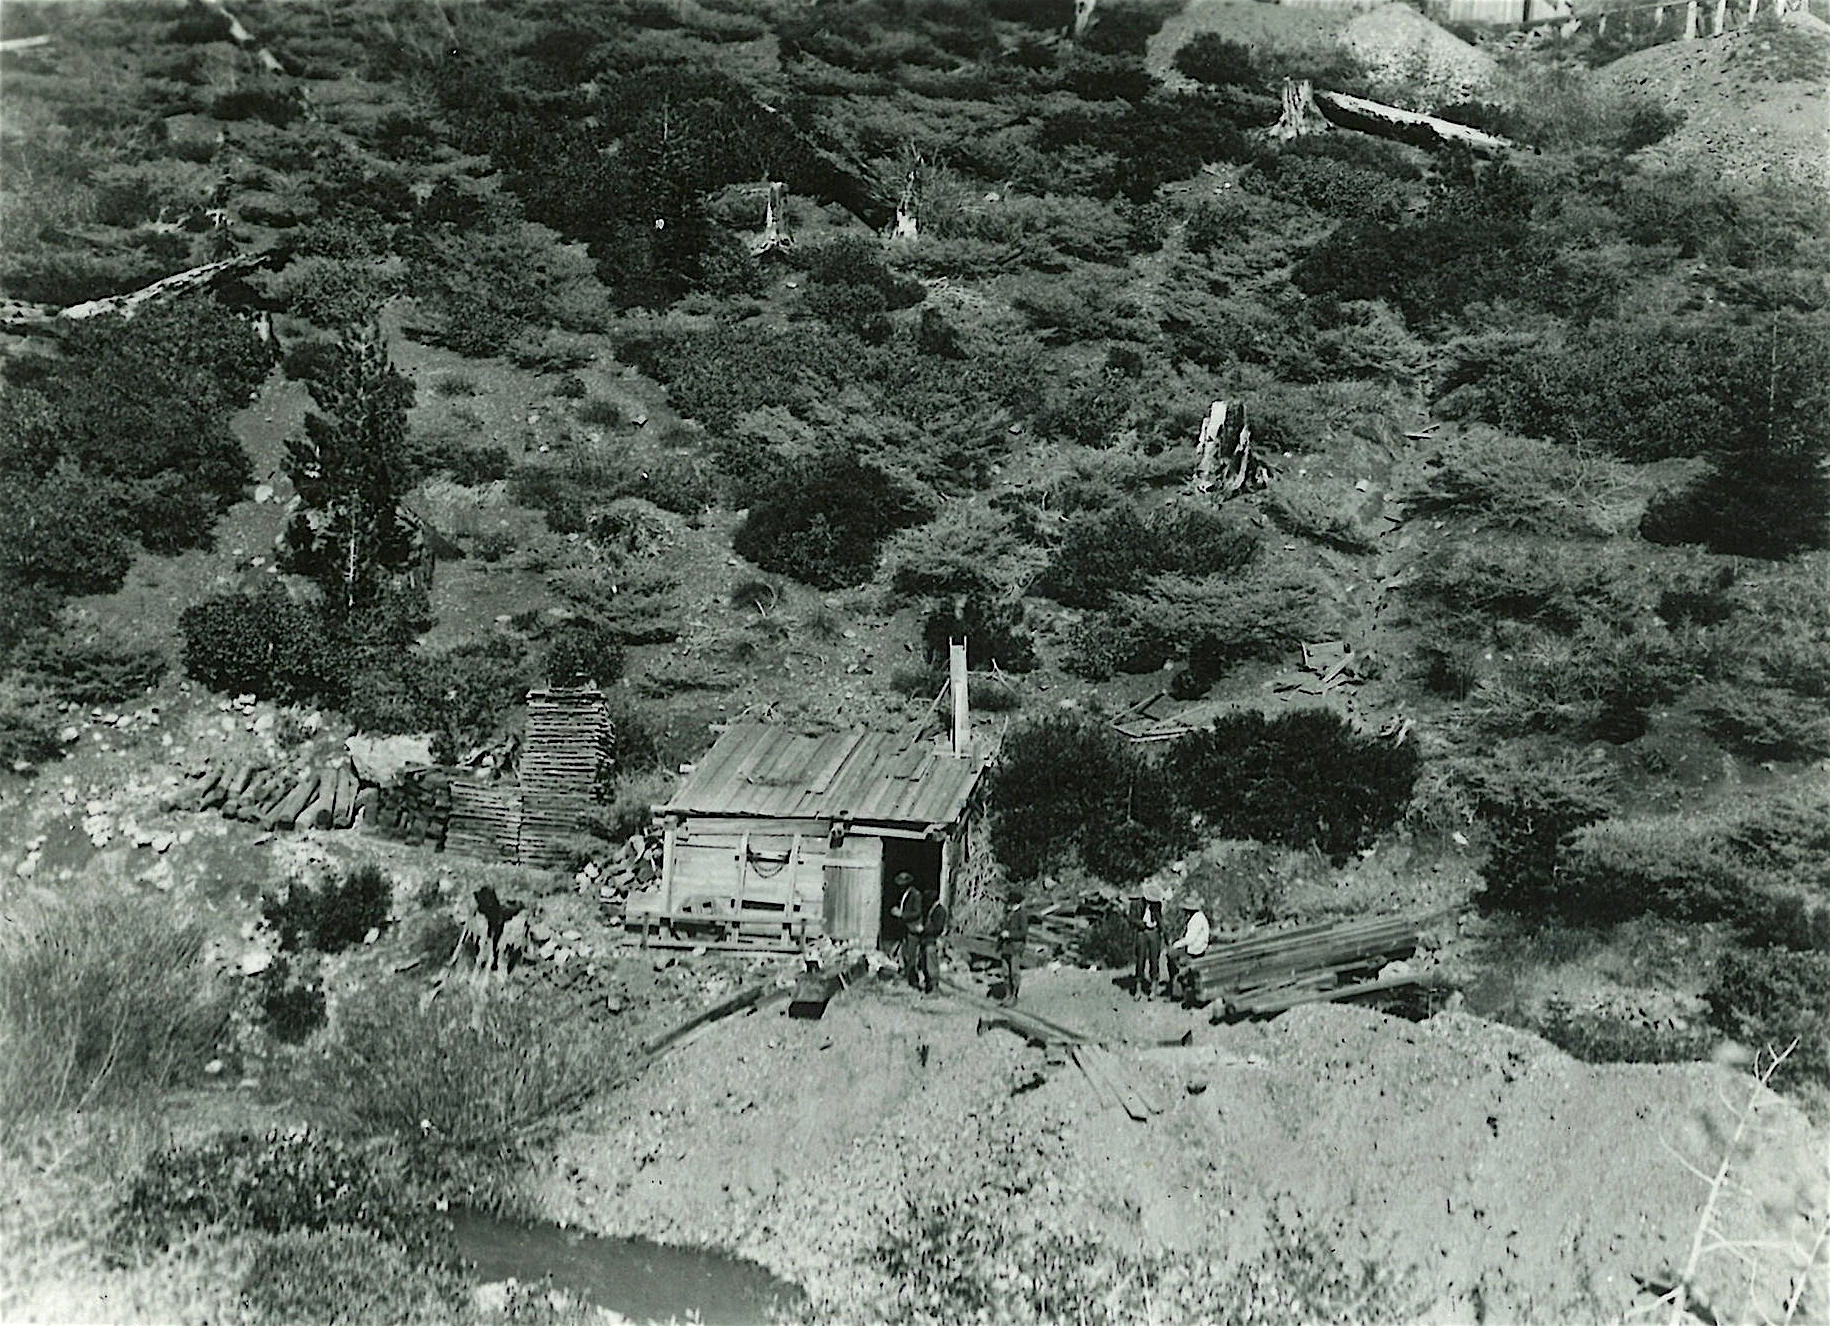 From 1852 to 1853, Matthew Turner and Richard Rundle were partners in this gold mine at Big Oak Flat.